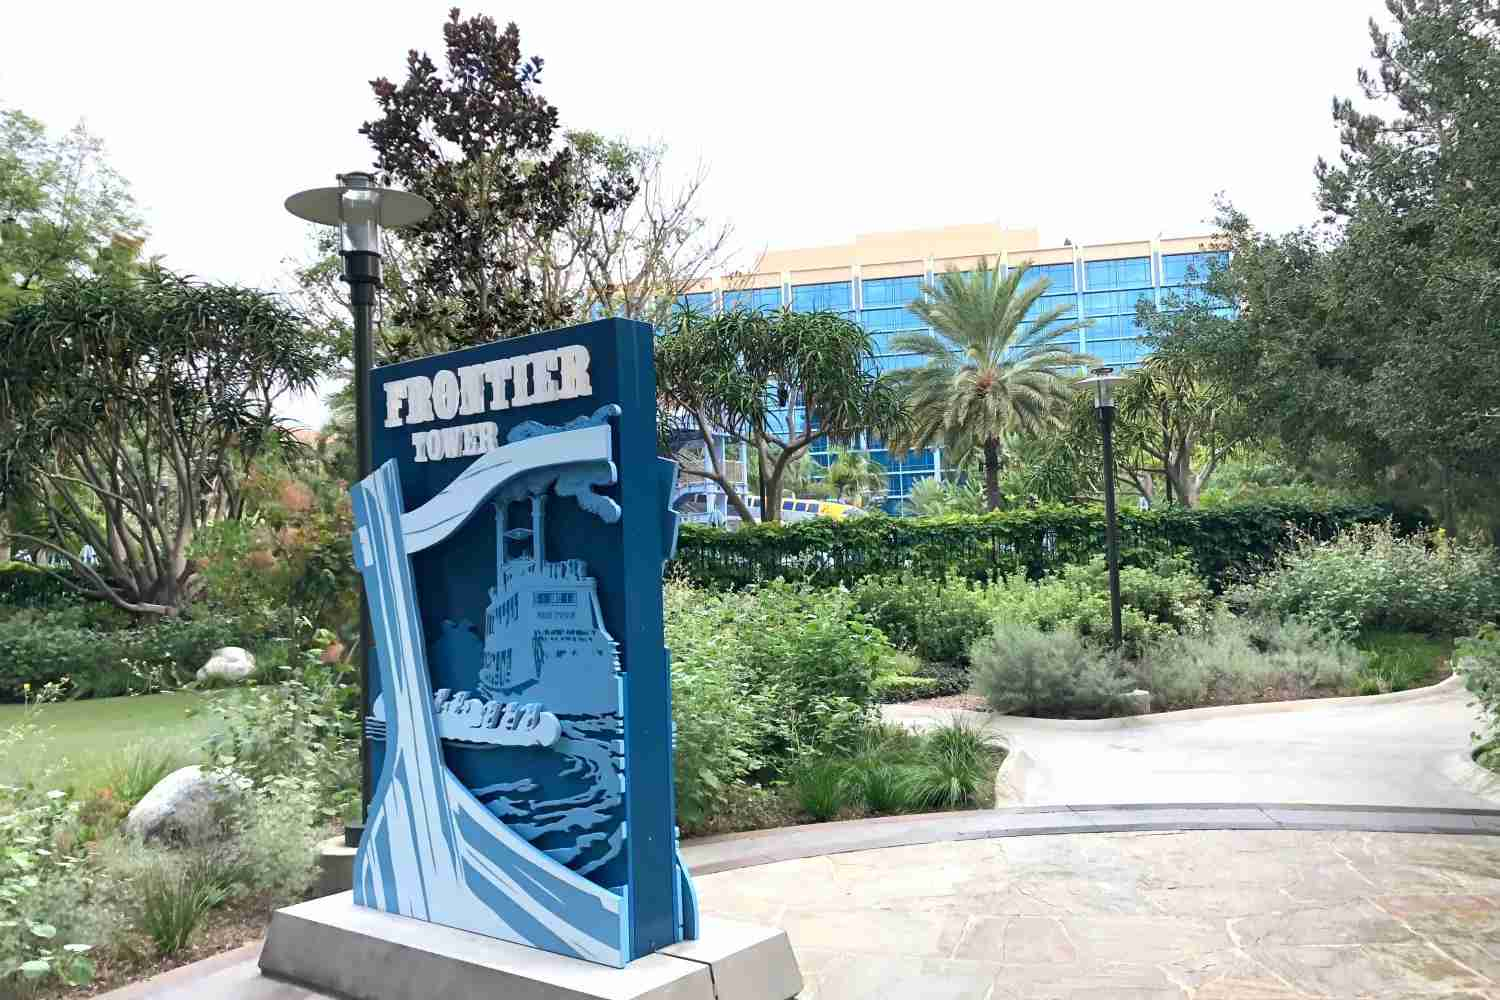 Disneyland Hotel - Frontier Tower